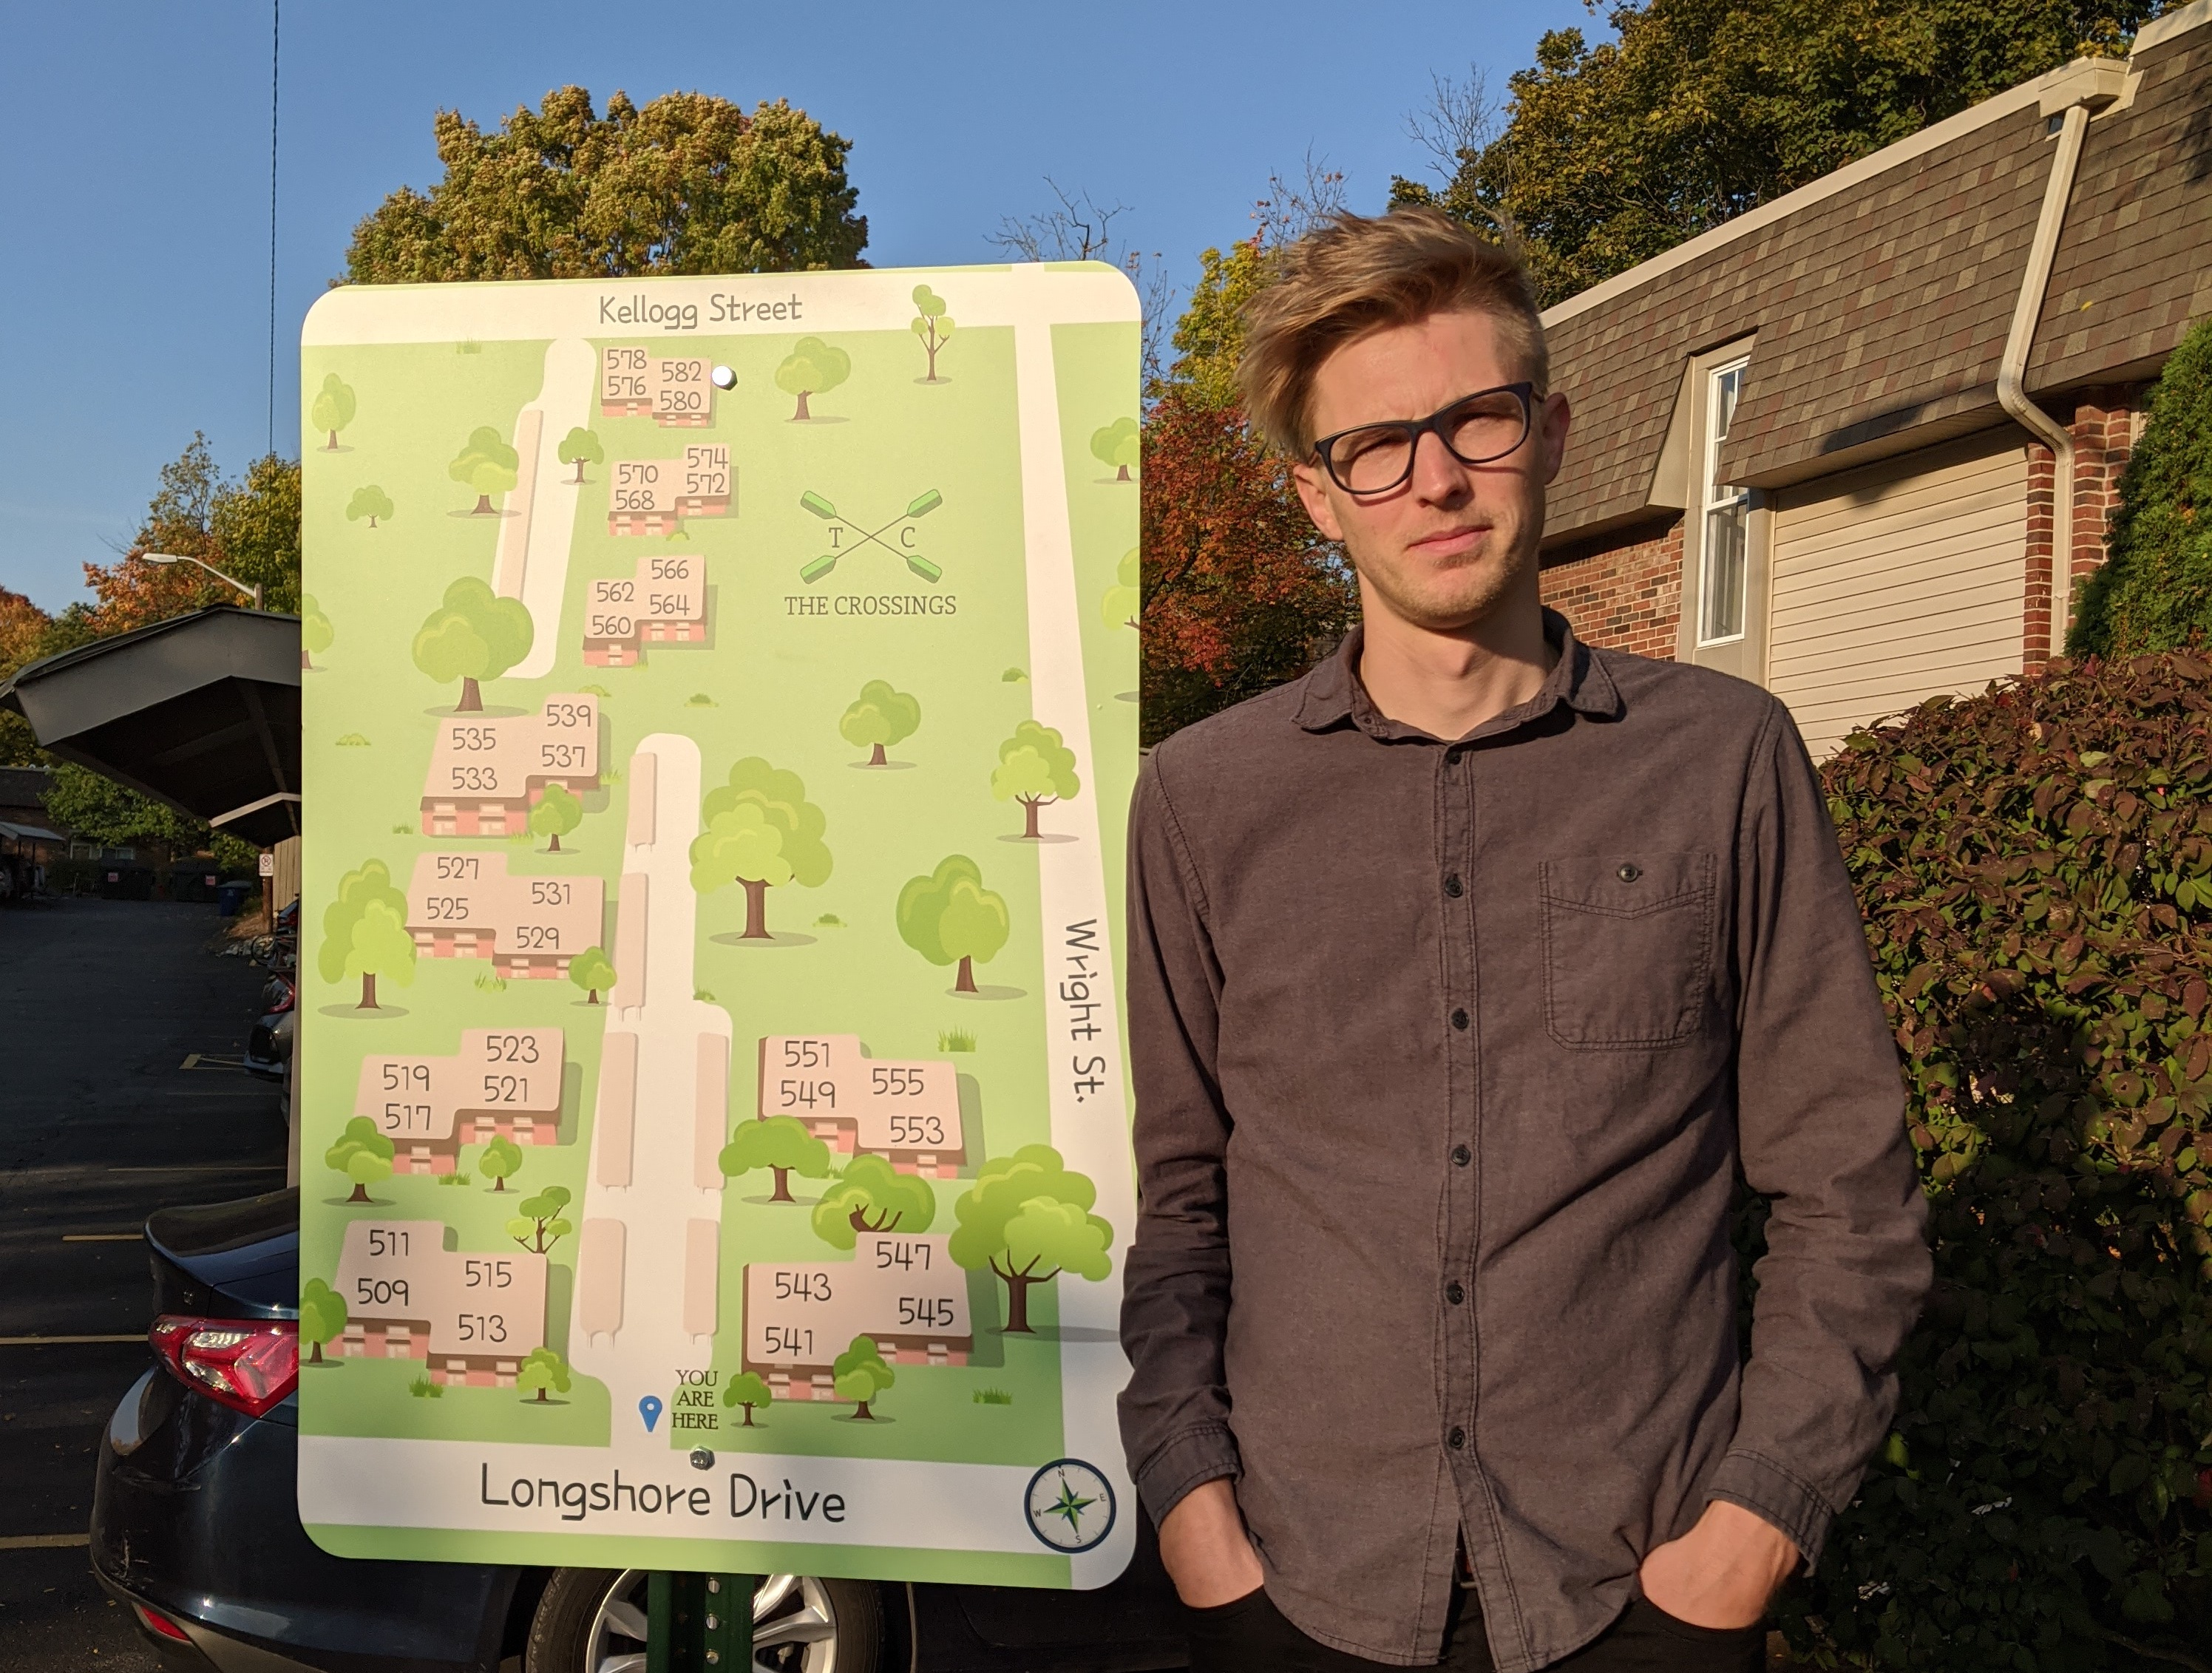 David stands next to a green sign with a map of the buildings in his apartment complex. You can see a building and a bush behind him to the right. His hands are in his pocket and he looks amused that they put up a sign without telling him they were going to ahead of time.